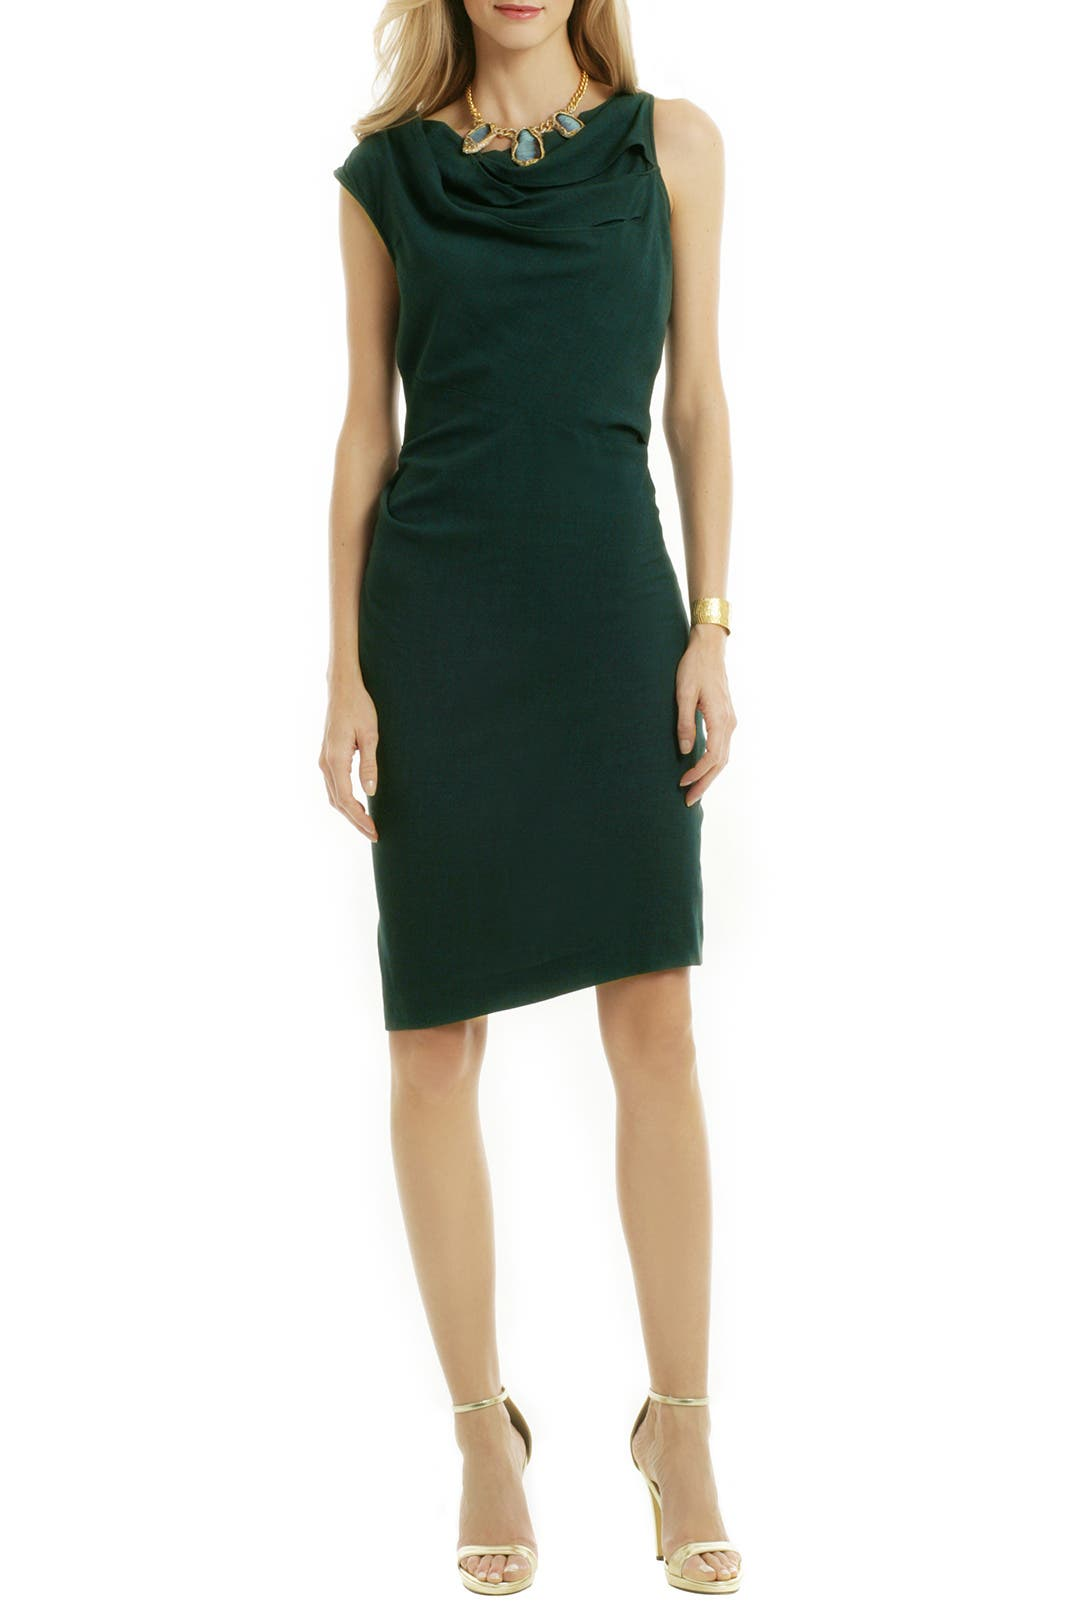 Green For You Dress by Vivienne Westwood Anglomania